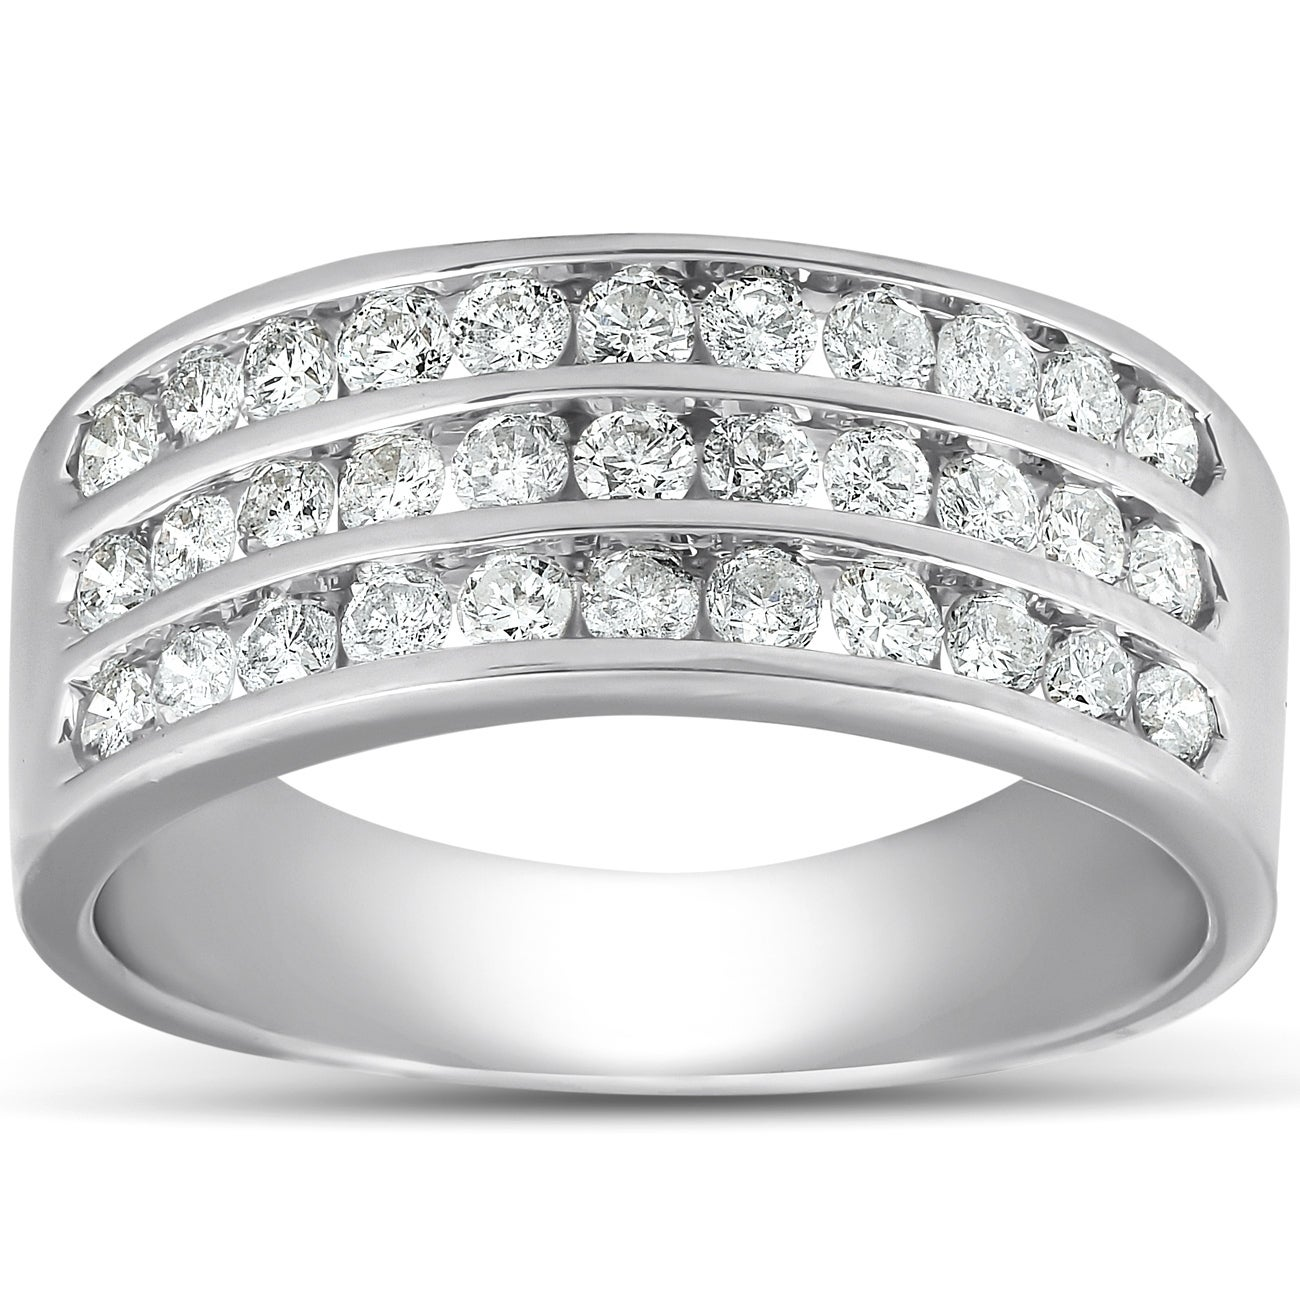 G-H,I2-I3 Size-4.25 1//10 cttw, 3 Diamond Wedding Band in 10K Yellow Gold